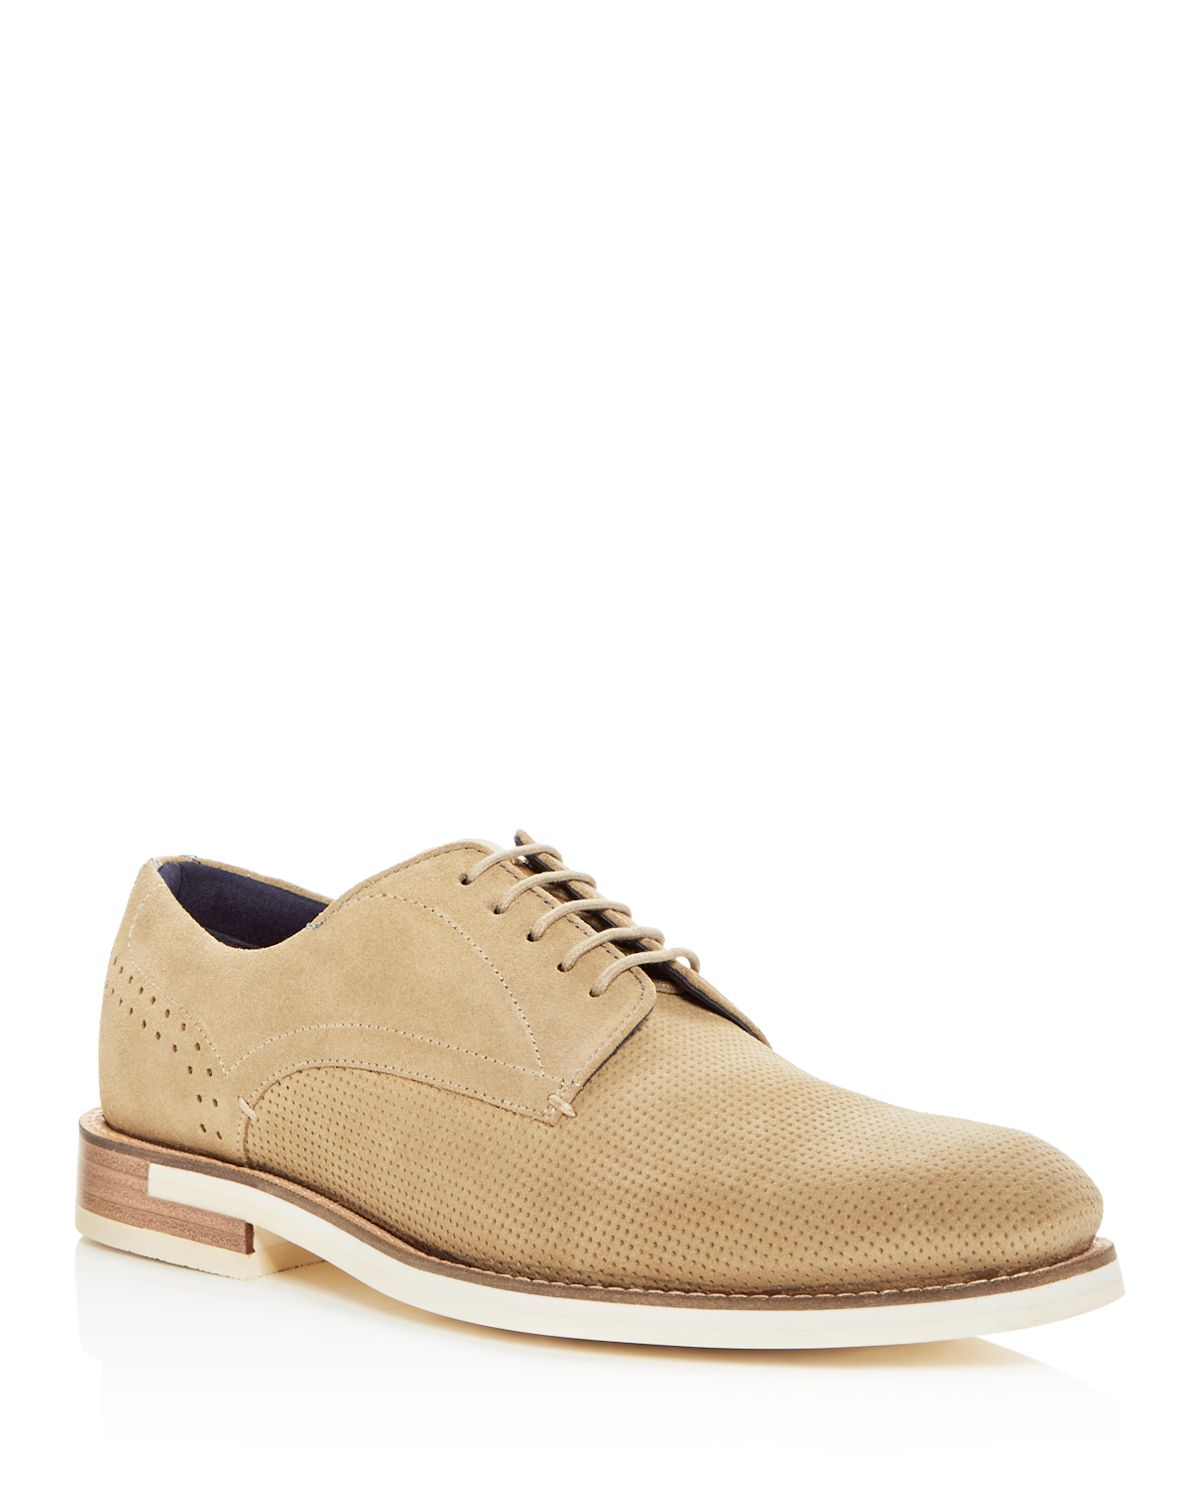 Ted Baker Men's Lapiin Embossed Suede Brogue Oxfords